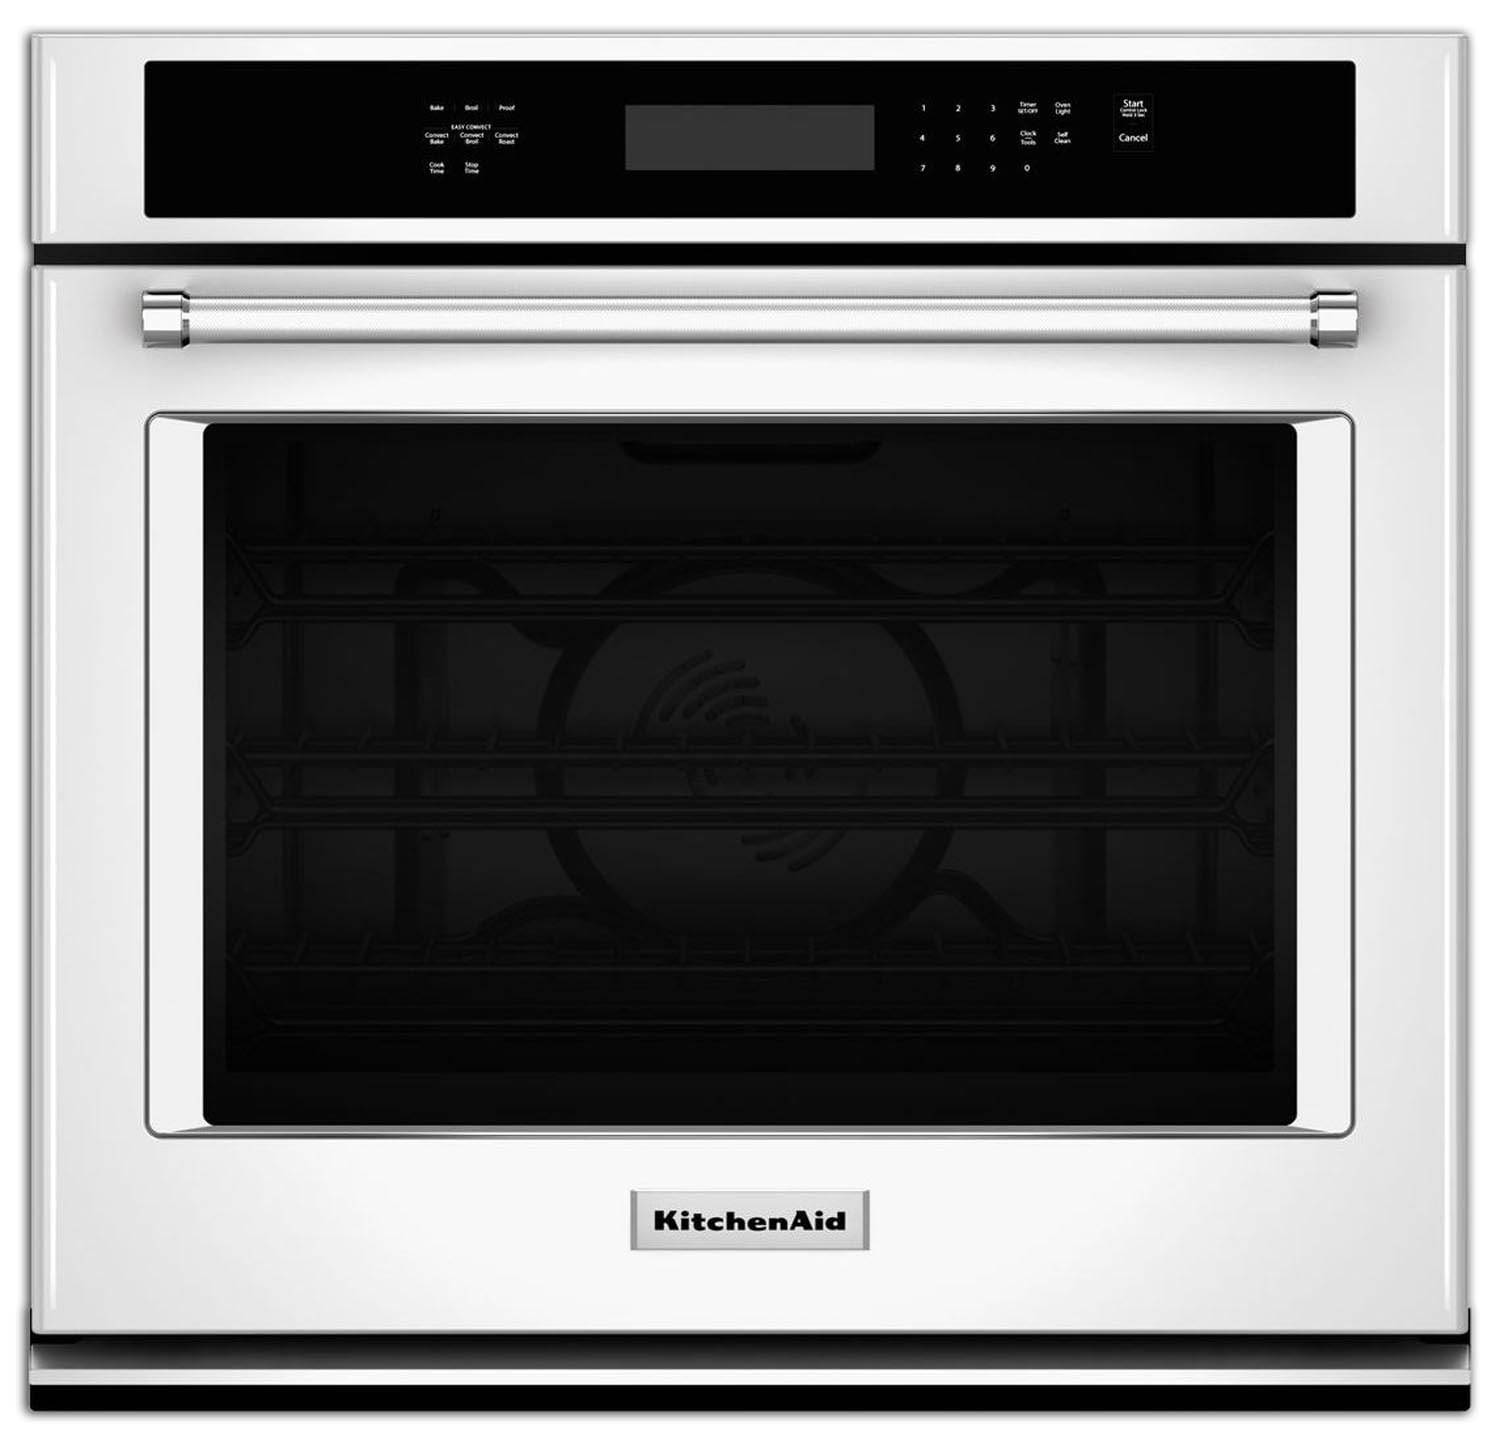 KitchenAid White Convection Wall Oven (4.3 Cu. Ft.) - KOSE507EWH